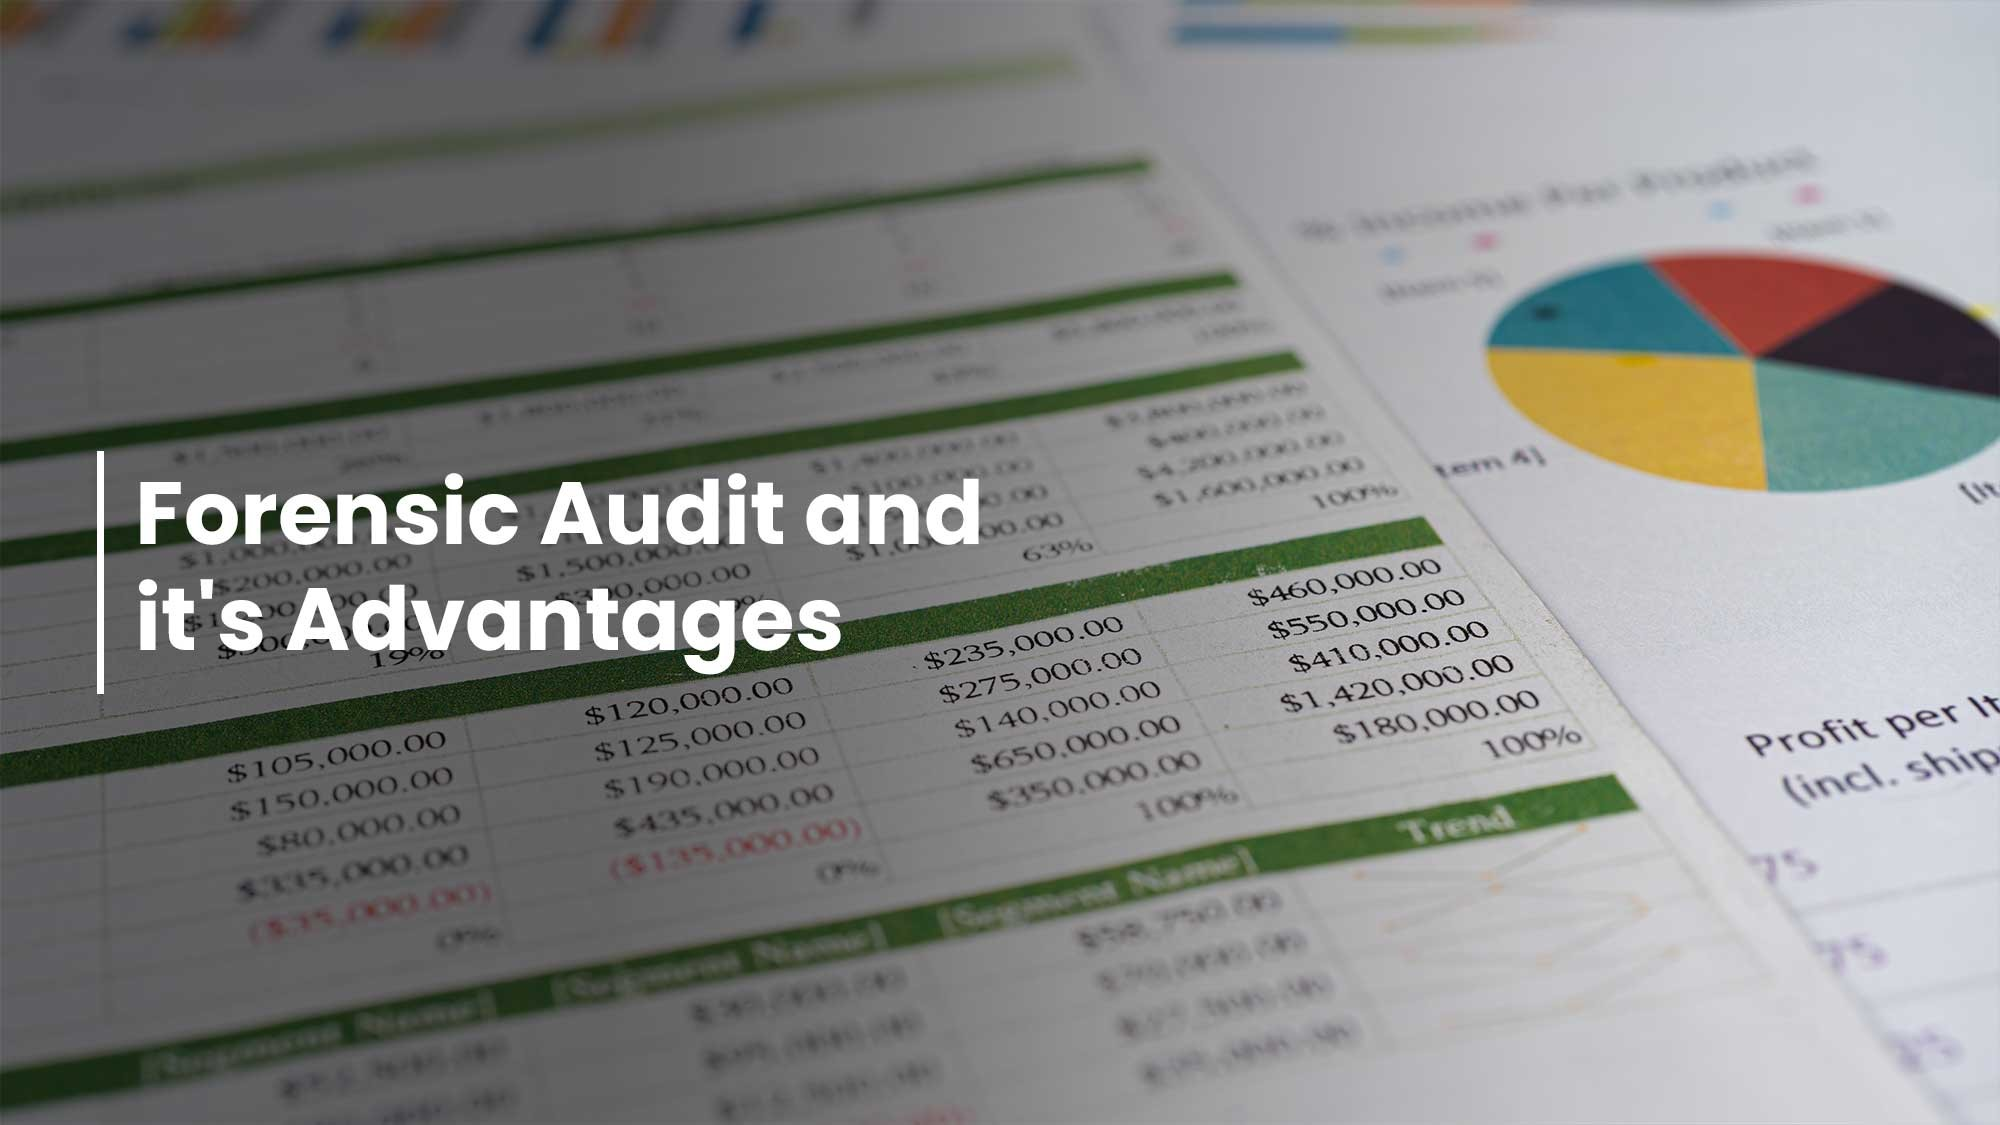 Forensic Audit And Its Advantages